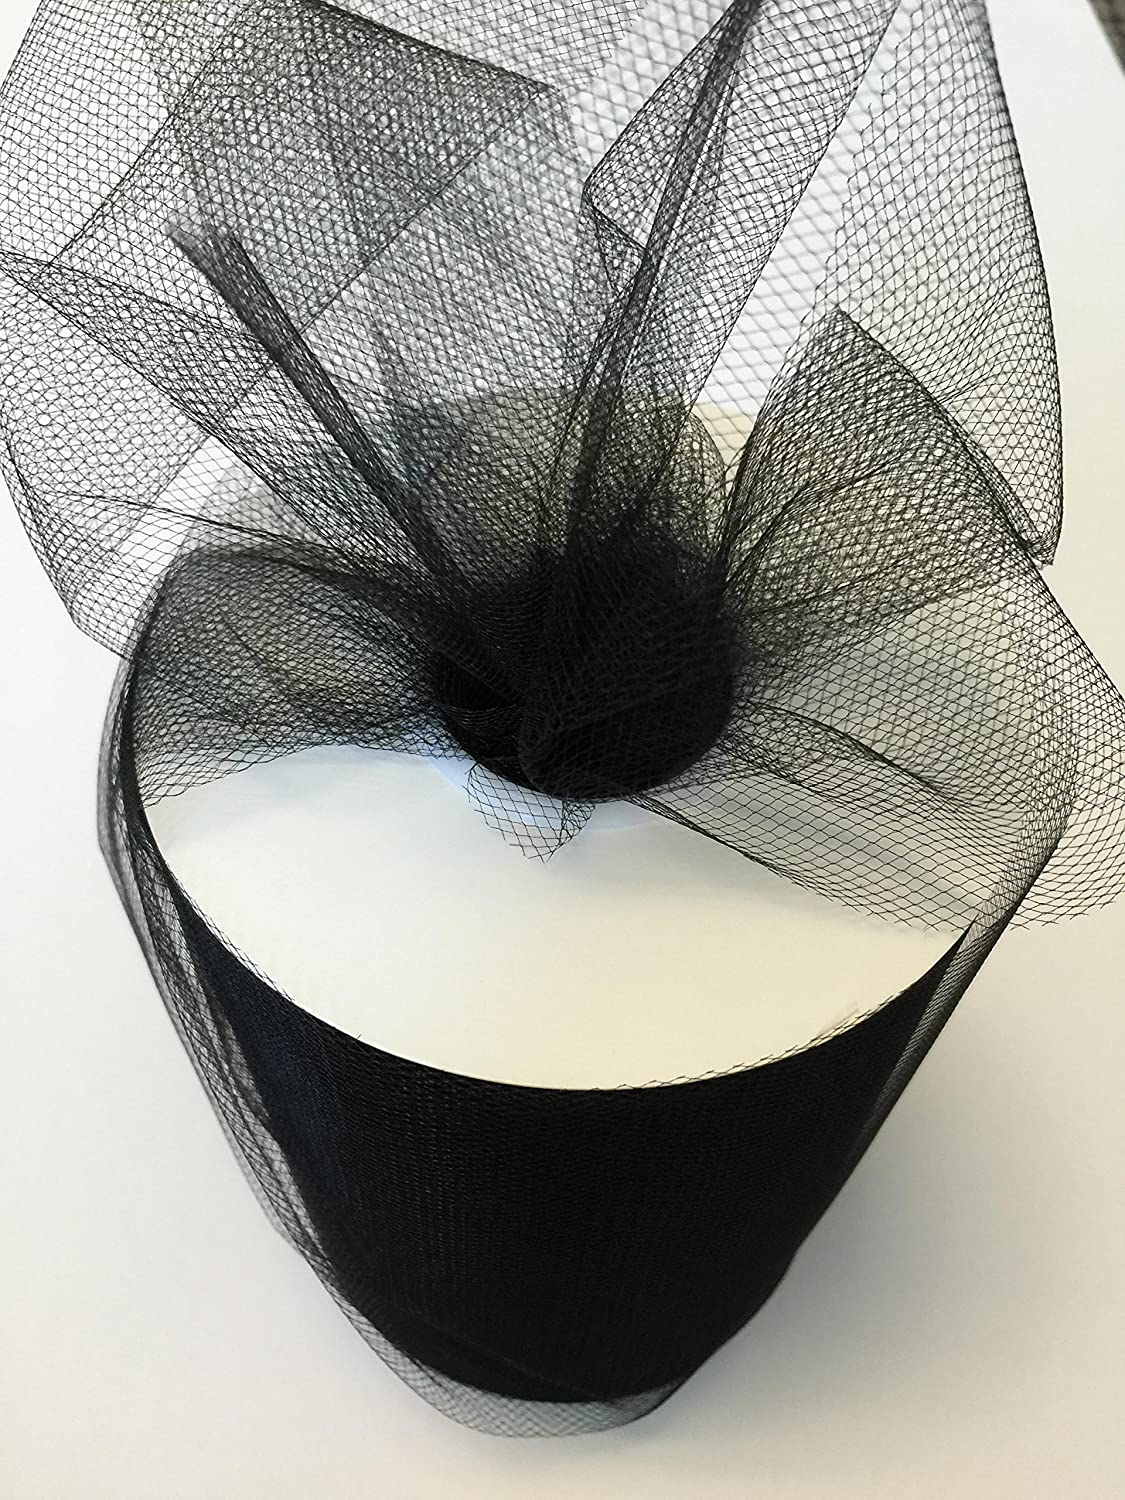 B01NALB40T Tulle Fabric Spool/Roll 6 inch x 100 Yards (300 feet), 34 Colors Available, On Sale Now! (Black) A157M7iejyL